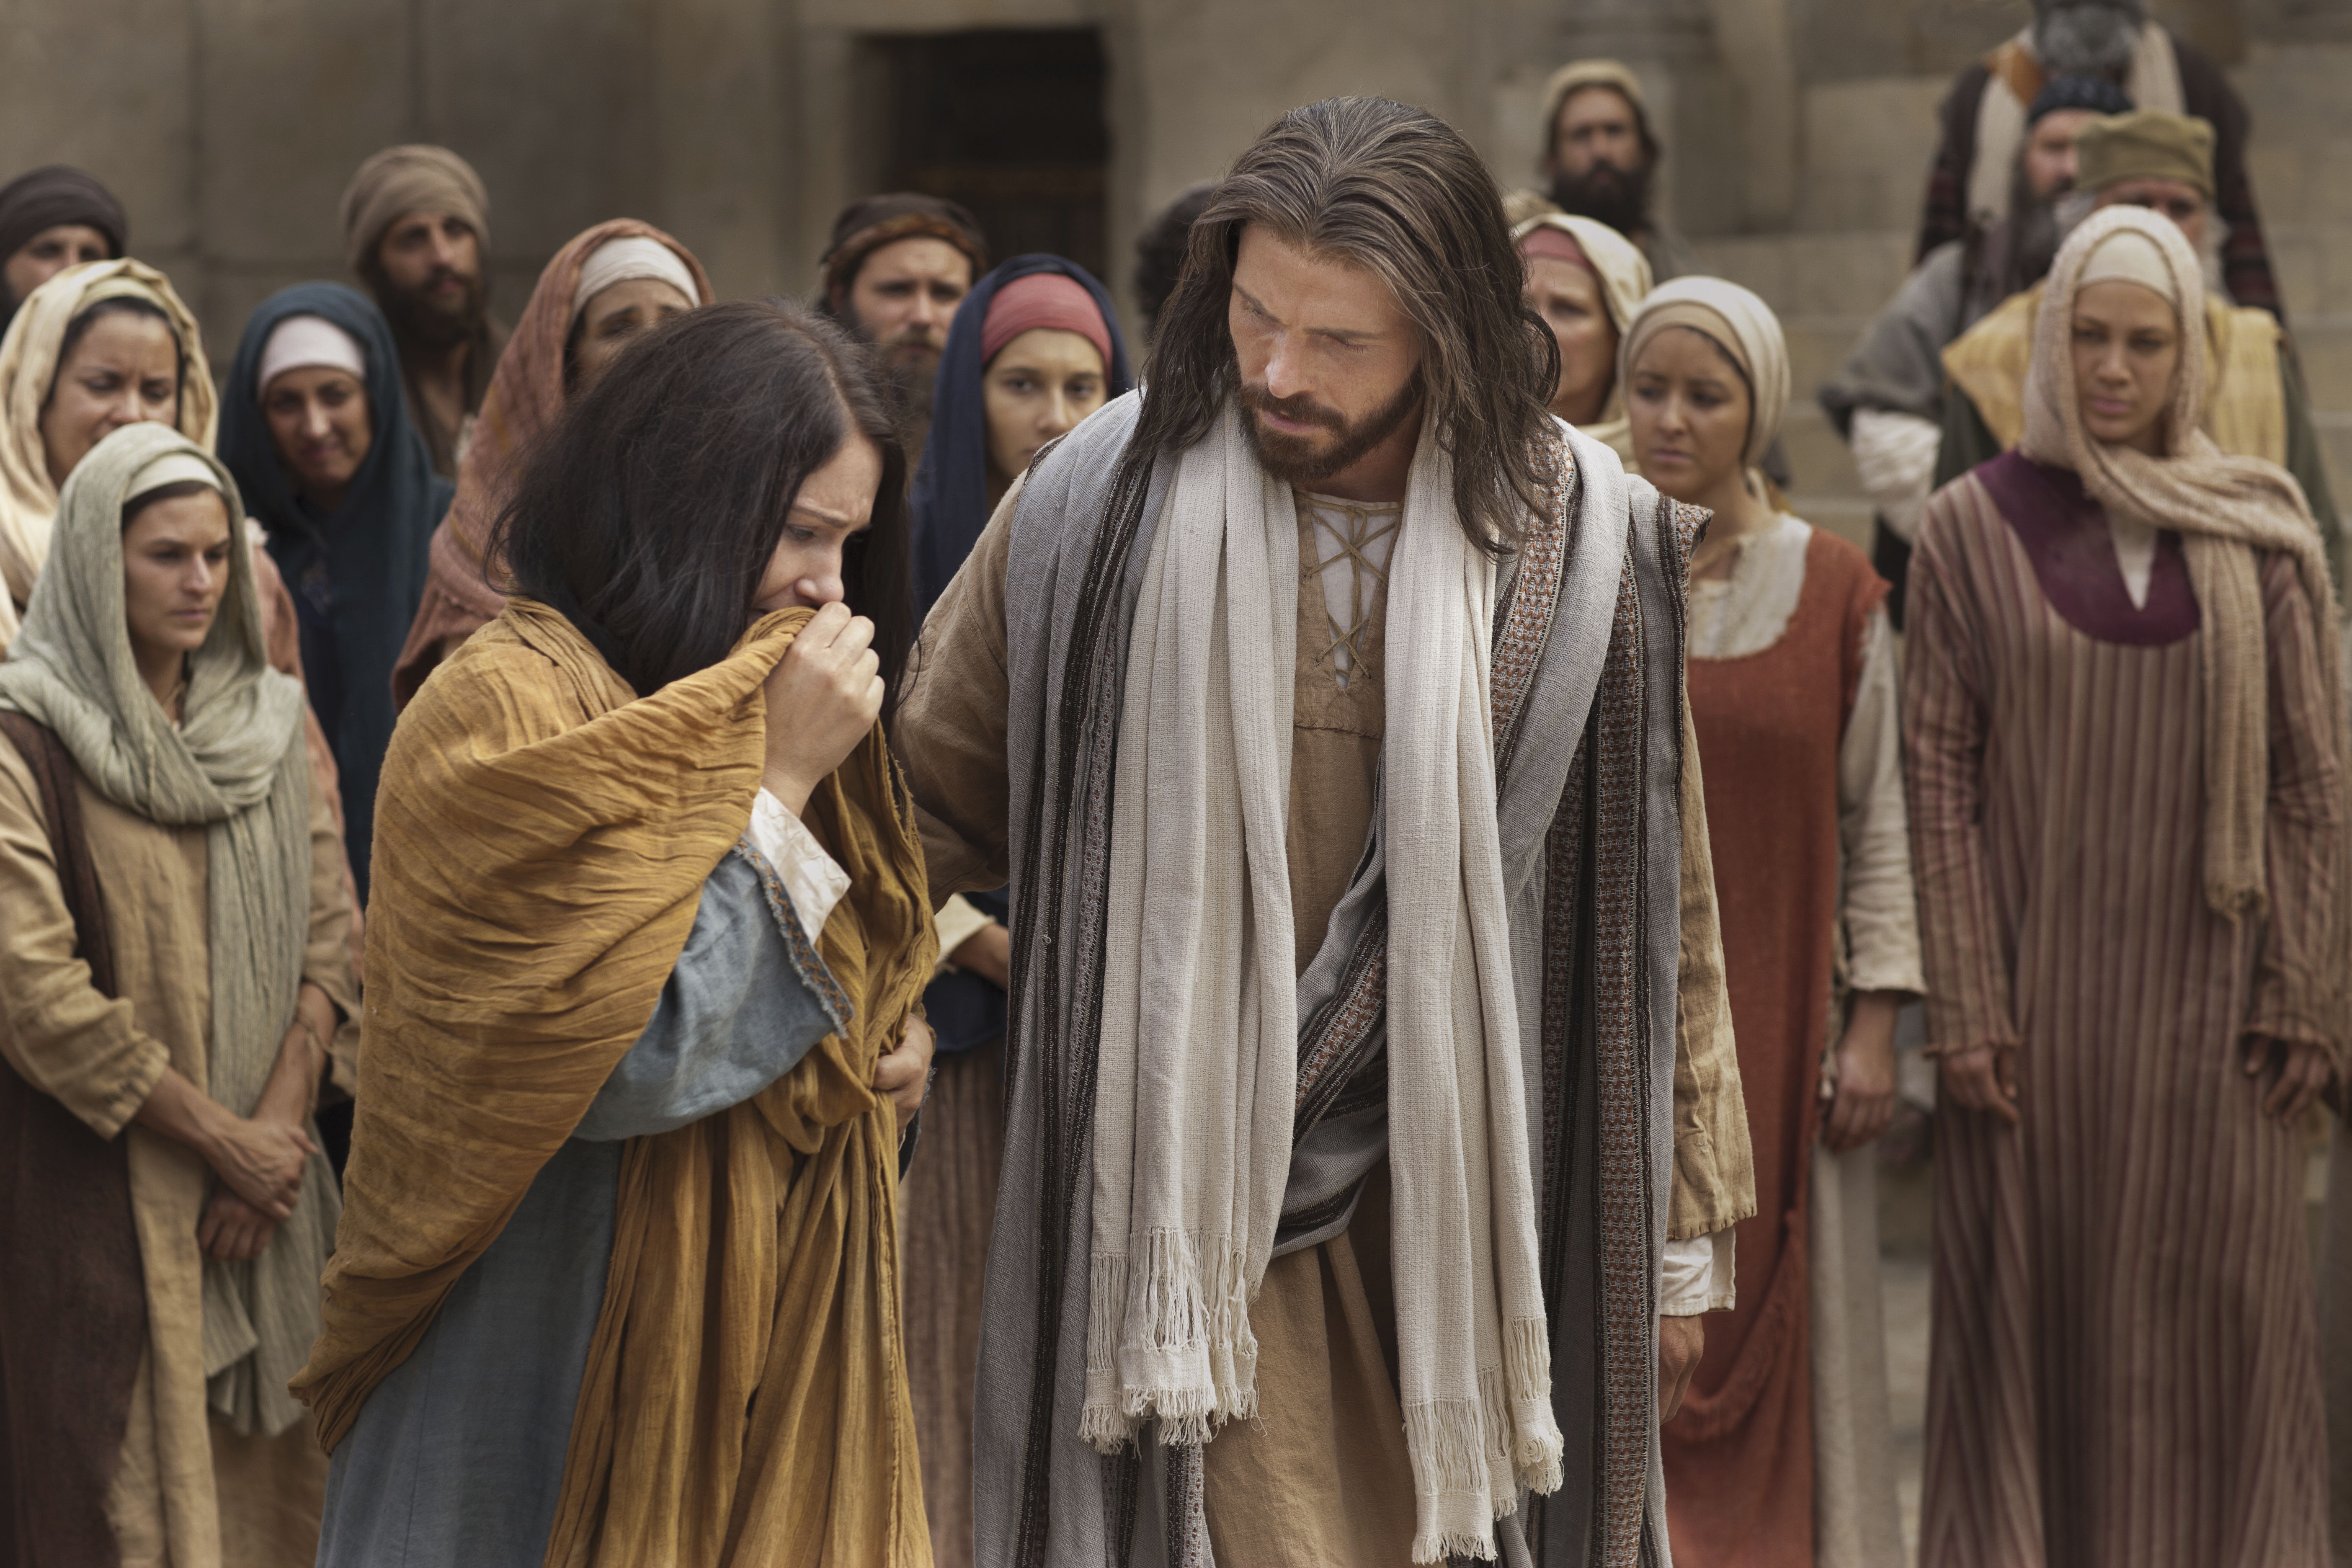 Jesus walking and talking with the woman taken in adultery.